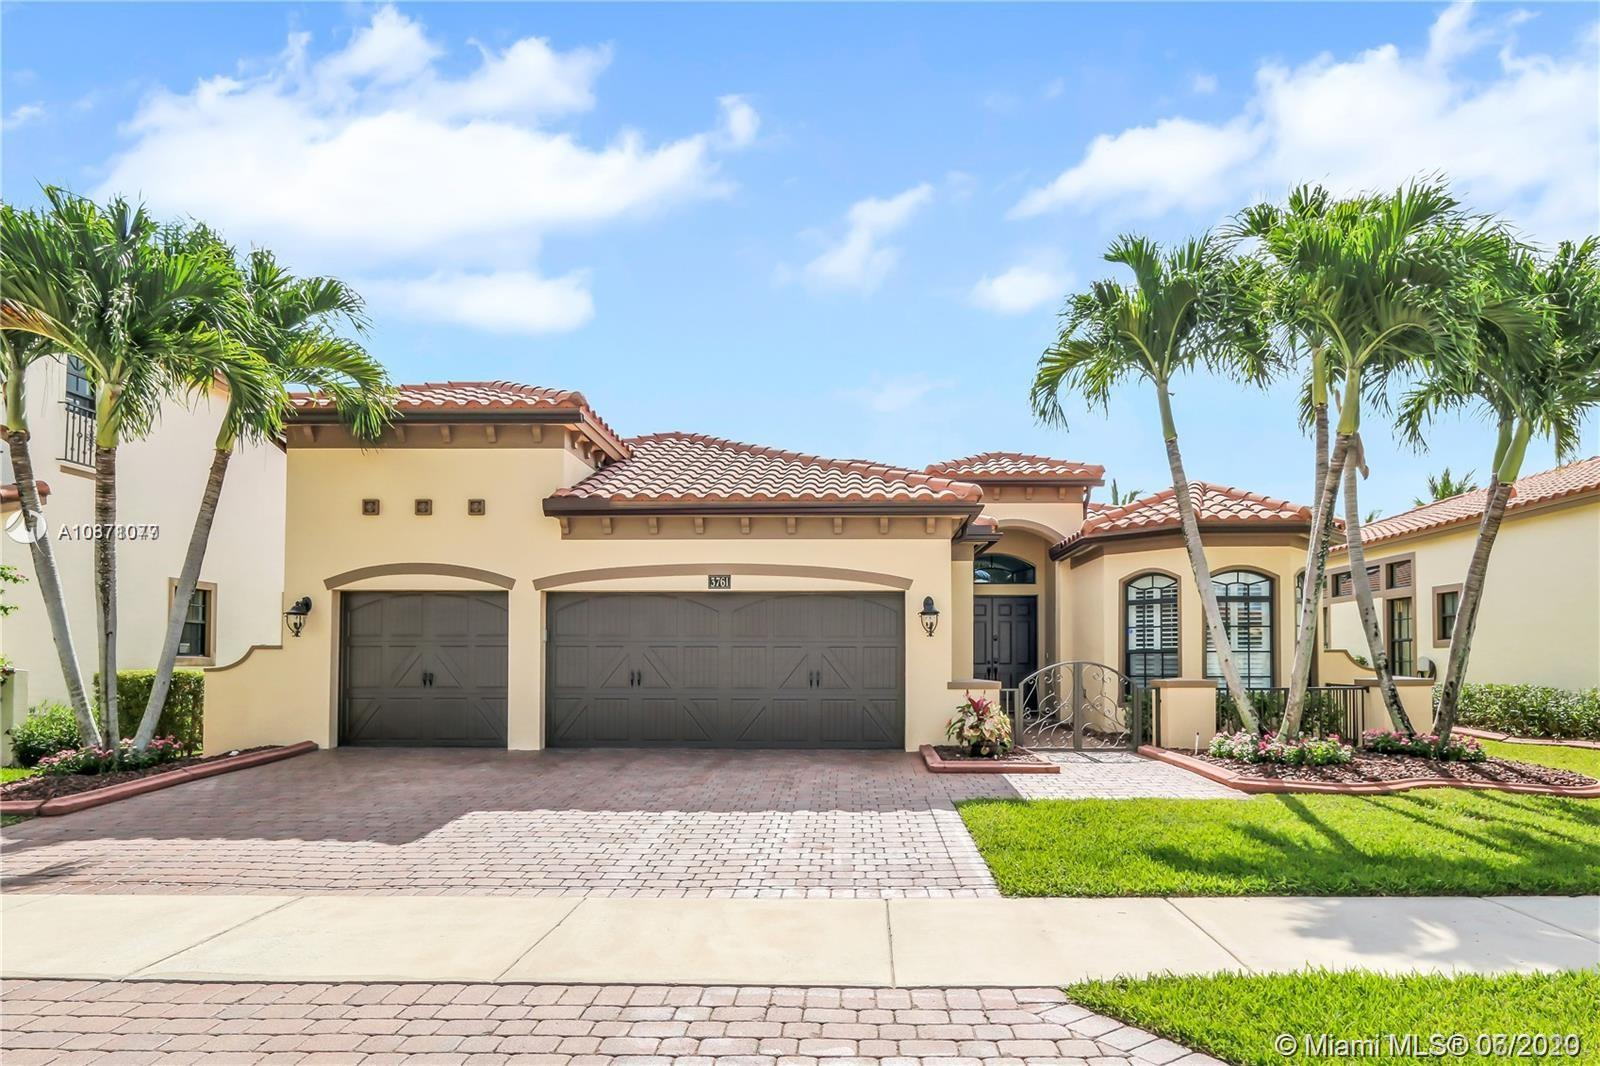 """DON'T MISS THIS TURNKEY LAKEFRONT BEAUTY! Largest Engle-built 1-story model in Cooper City's highly sought-after, family friendly + gated ESTADA community w/ 24/7 guard! High-impact glass windows/doors; keyless entry locks; 10-13' volume, coffered + tray ceilings; upgraded kitchen w/ double ovens, 42"""" custom cabs + large island; triple-split floorplan; master w/ sitting area, custom walk-in closets, floor-to-ceiling travertine in bath, dual walk-in shower w/ body sprays + jacuzzi tub; Bose surround sound ceiling speakers; bay windows; plantation shutters; 3-car garage w/ Premiere Garage flooring, cabs, grids, racks + overhead storage; ADT cell guard; internet, cable + ADT monitoring incl. in monthly HOA fees. New ACs in 2014 & 2018. Furniture are not included. Schedule a viewing today!"""